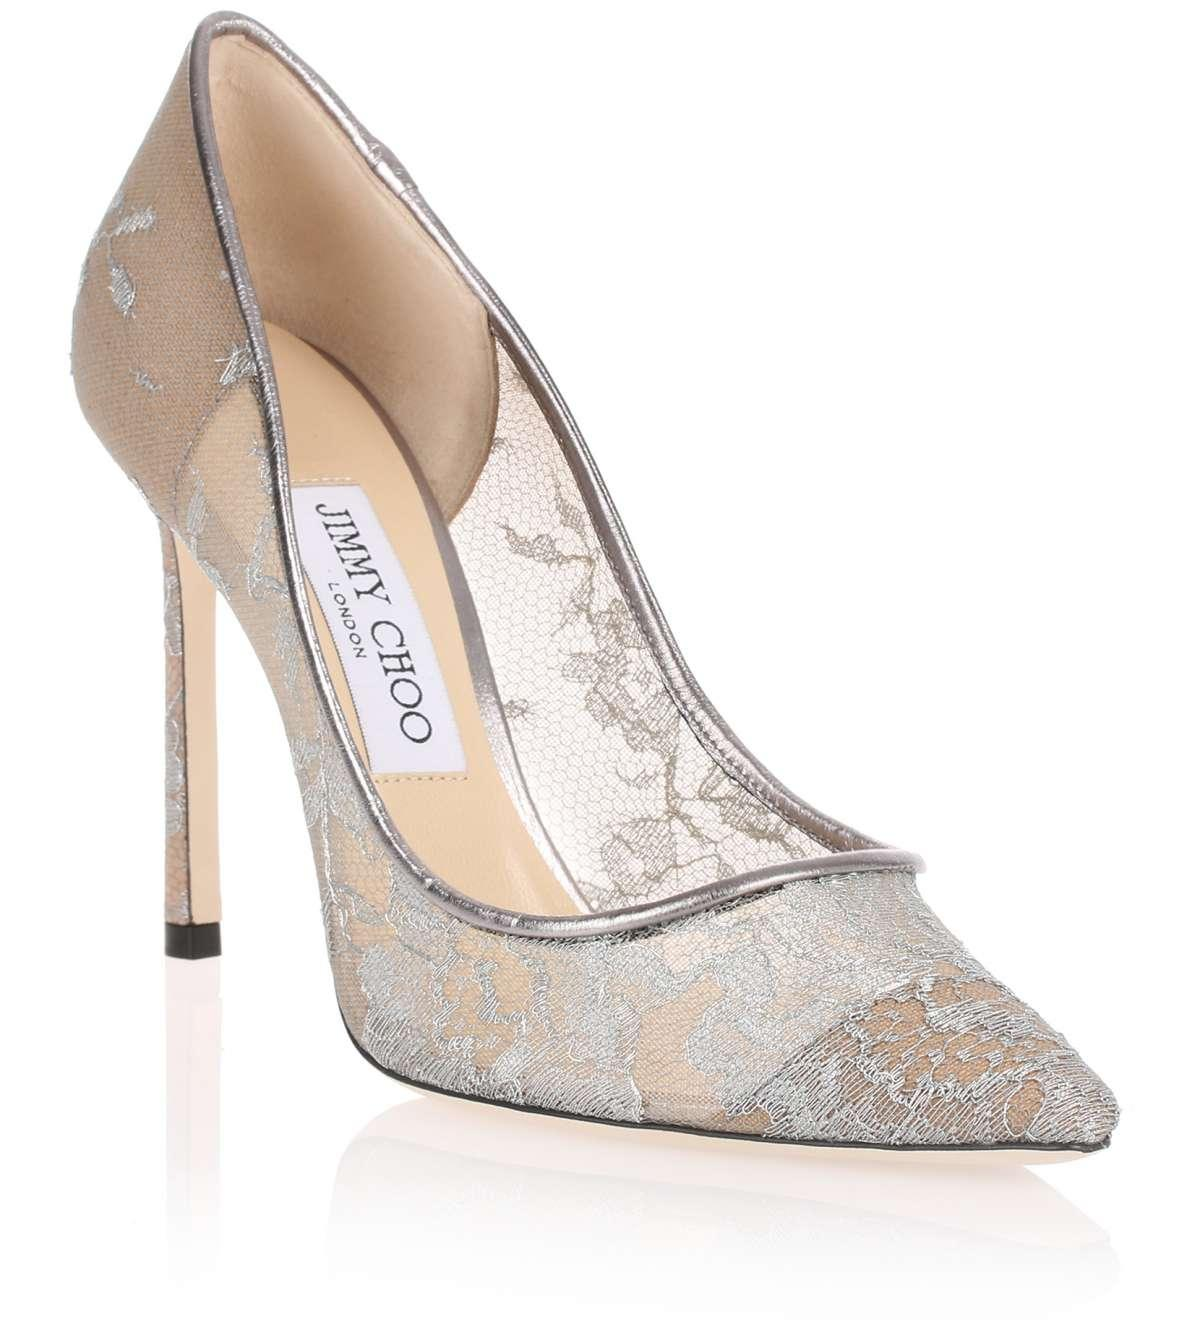 Romy 100 metallic leather pumps Jimmy Choo London 12mtRTYQX